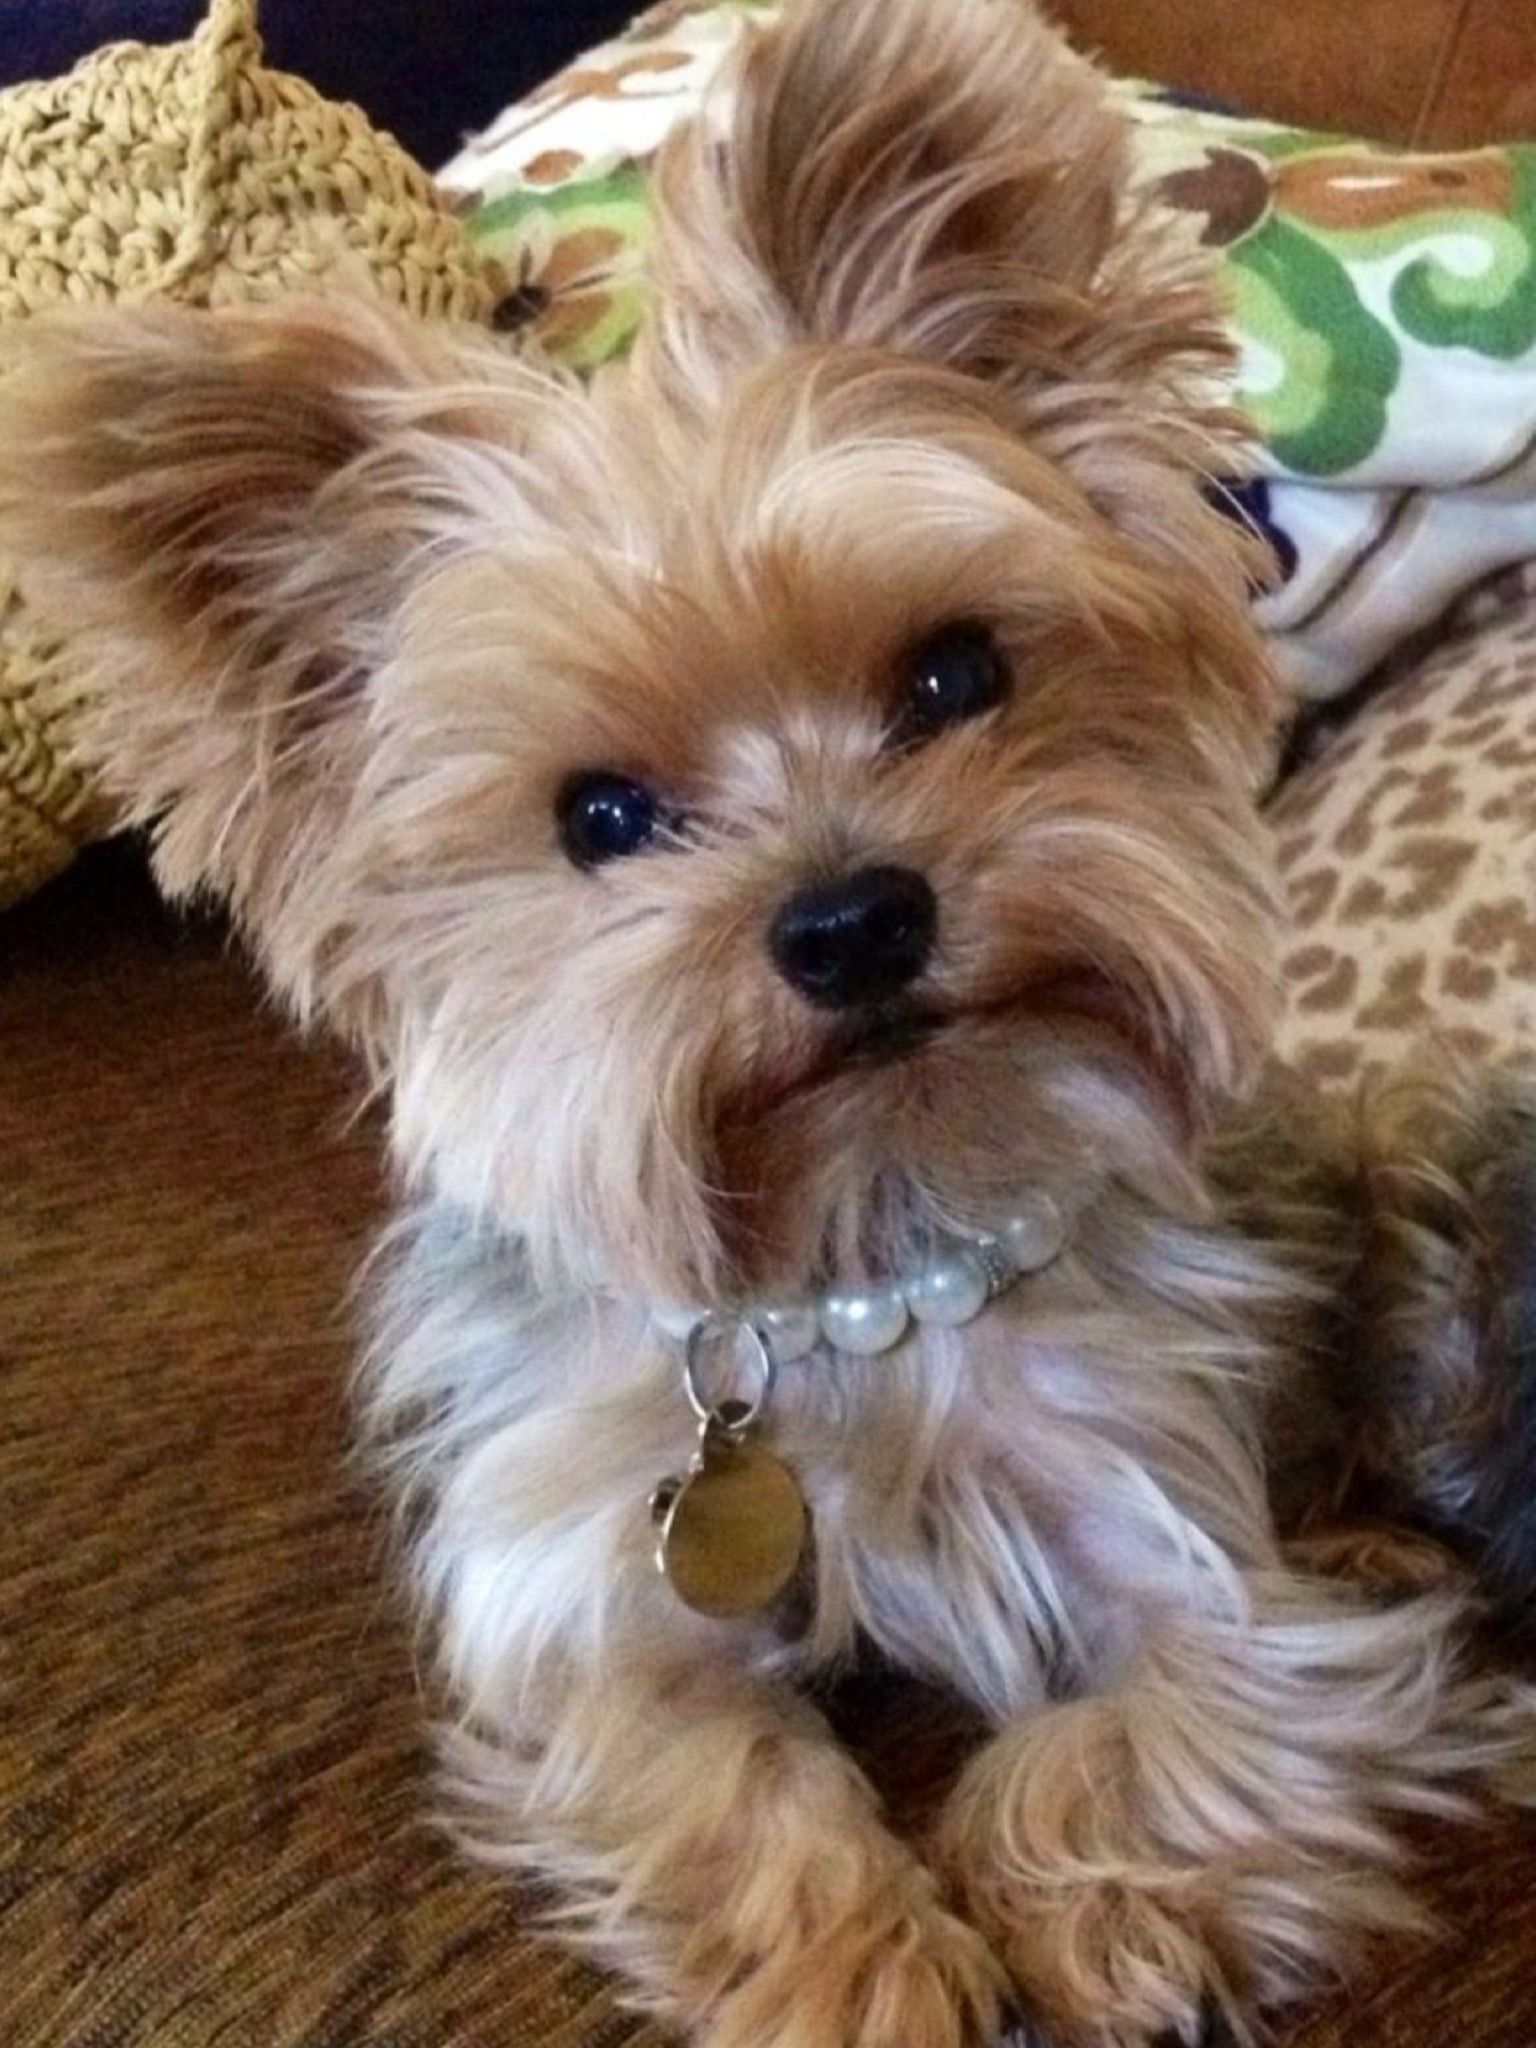 Pin By Vania Macedo On All About The Dog Yorkie Puppy Yorkshire Terrier Puppies Cute Animals